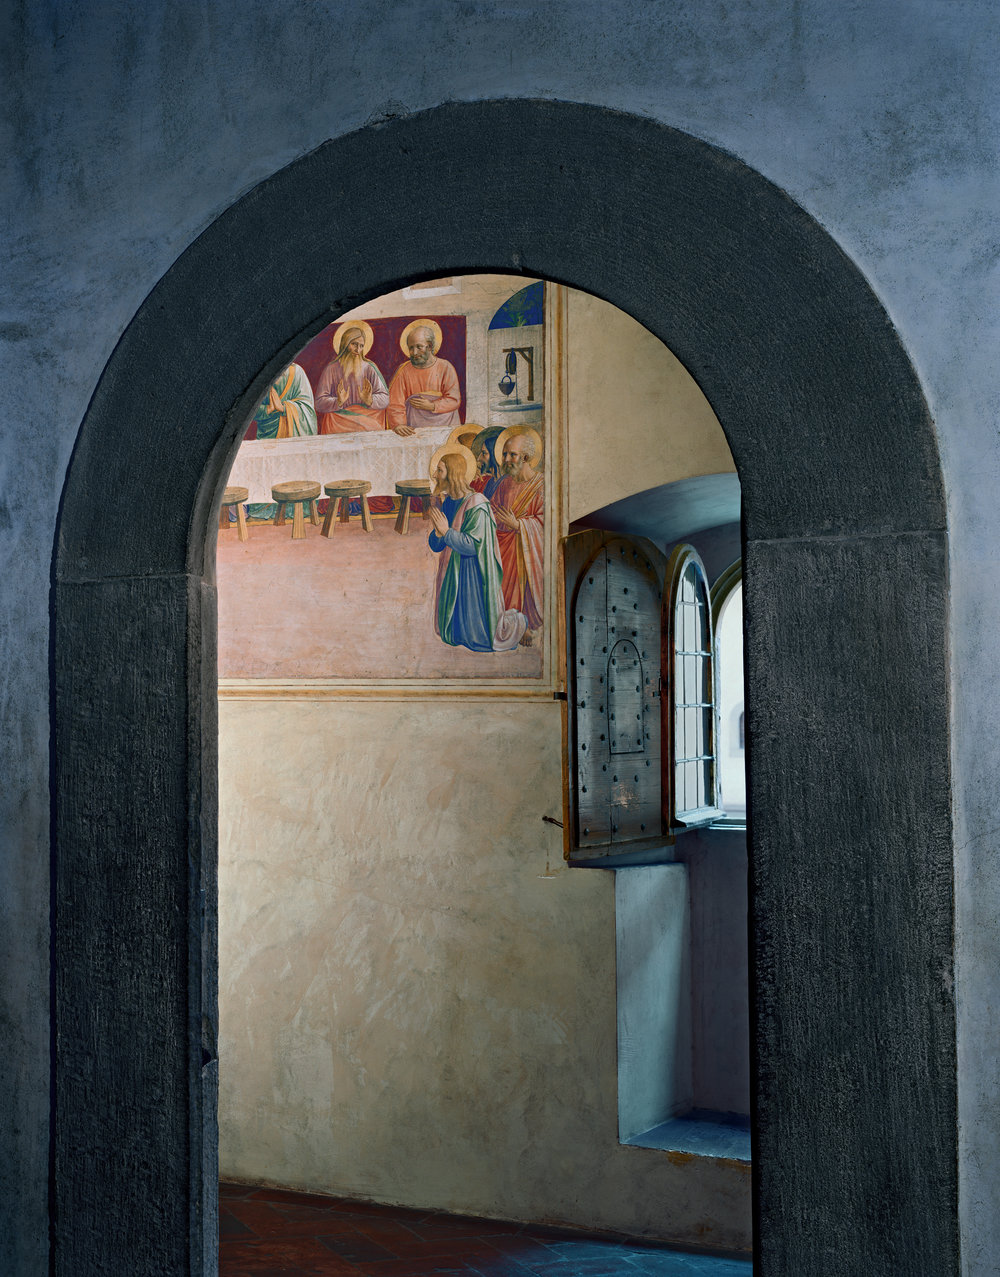 The Last Supper, or Communion of the Apostles by Fra Angelico, Cell 35, Museum of San Marco Convent, Florence, Italy, 2010 © Robert Polidori, Courtesy of Paul Kasmin Gallery